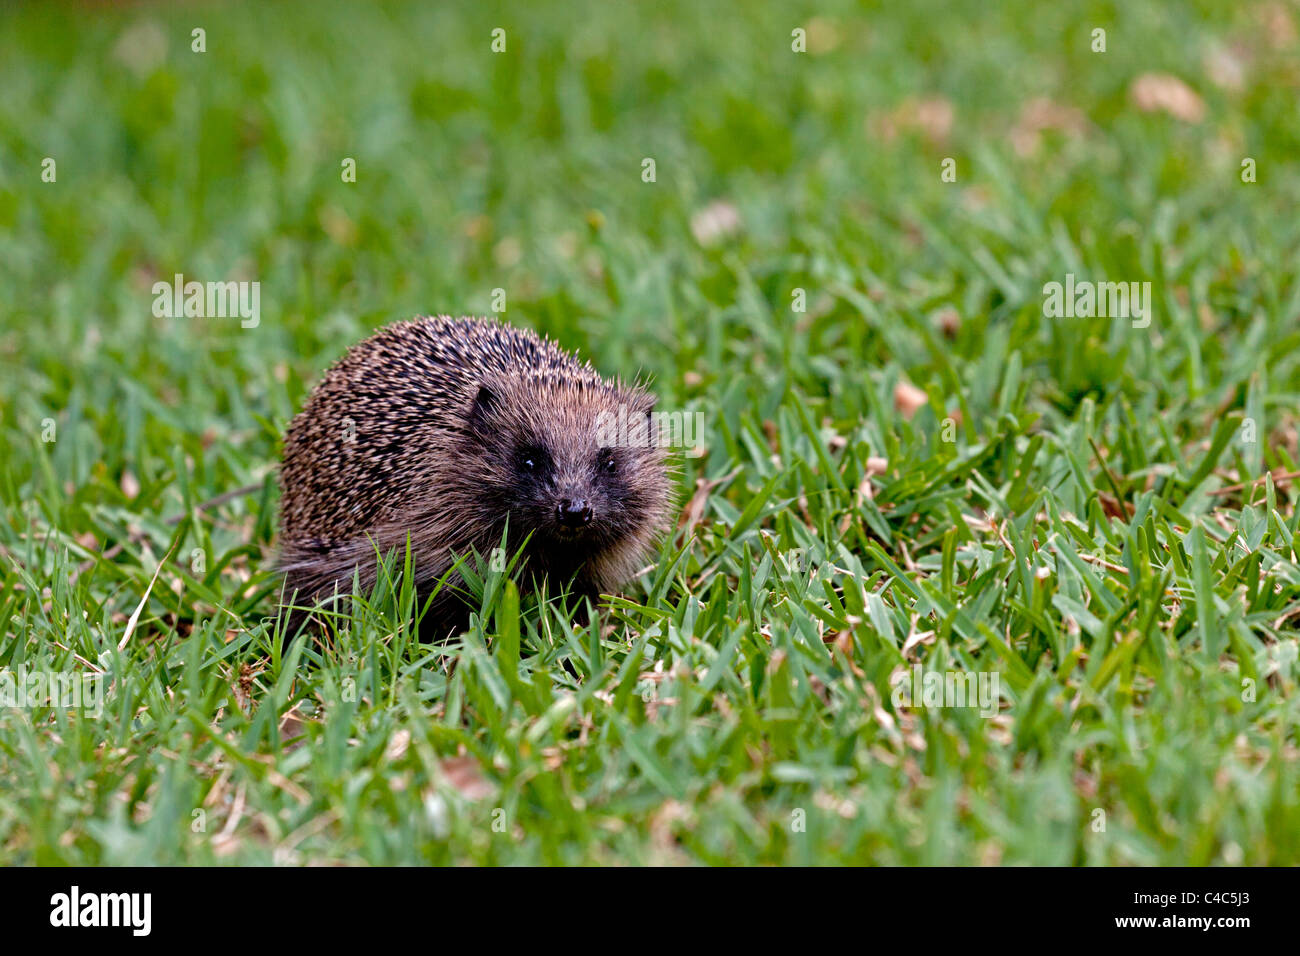 An adult hedgehog foraging on the field (Aquitaine - France). Hérisson adulte cherchant sa nourriture sur une pelouse Stock Photo